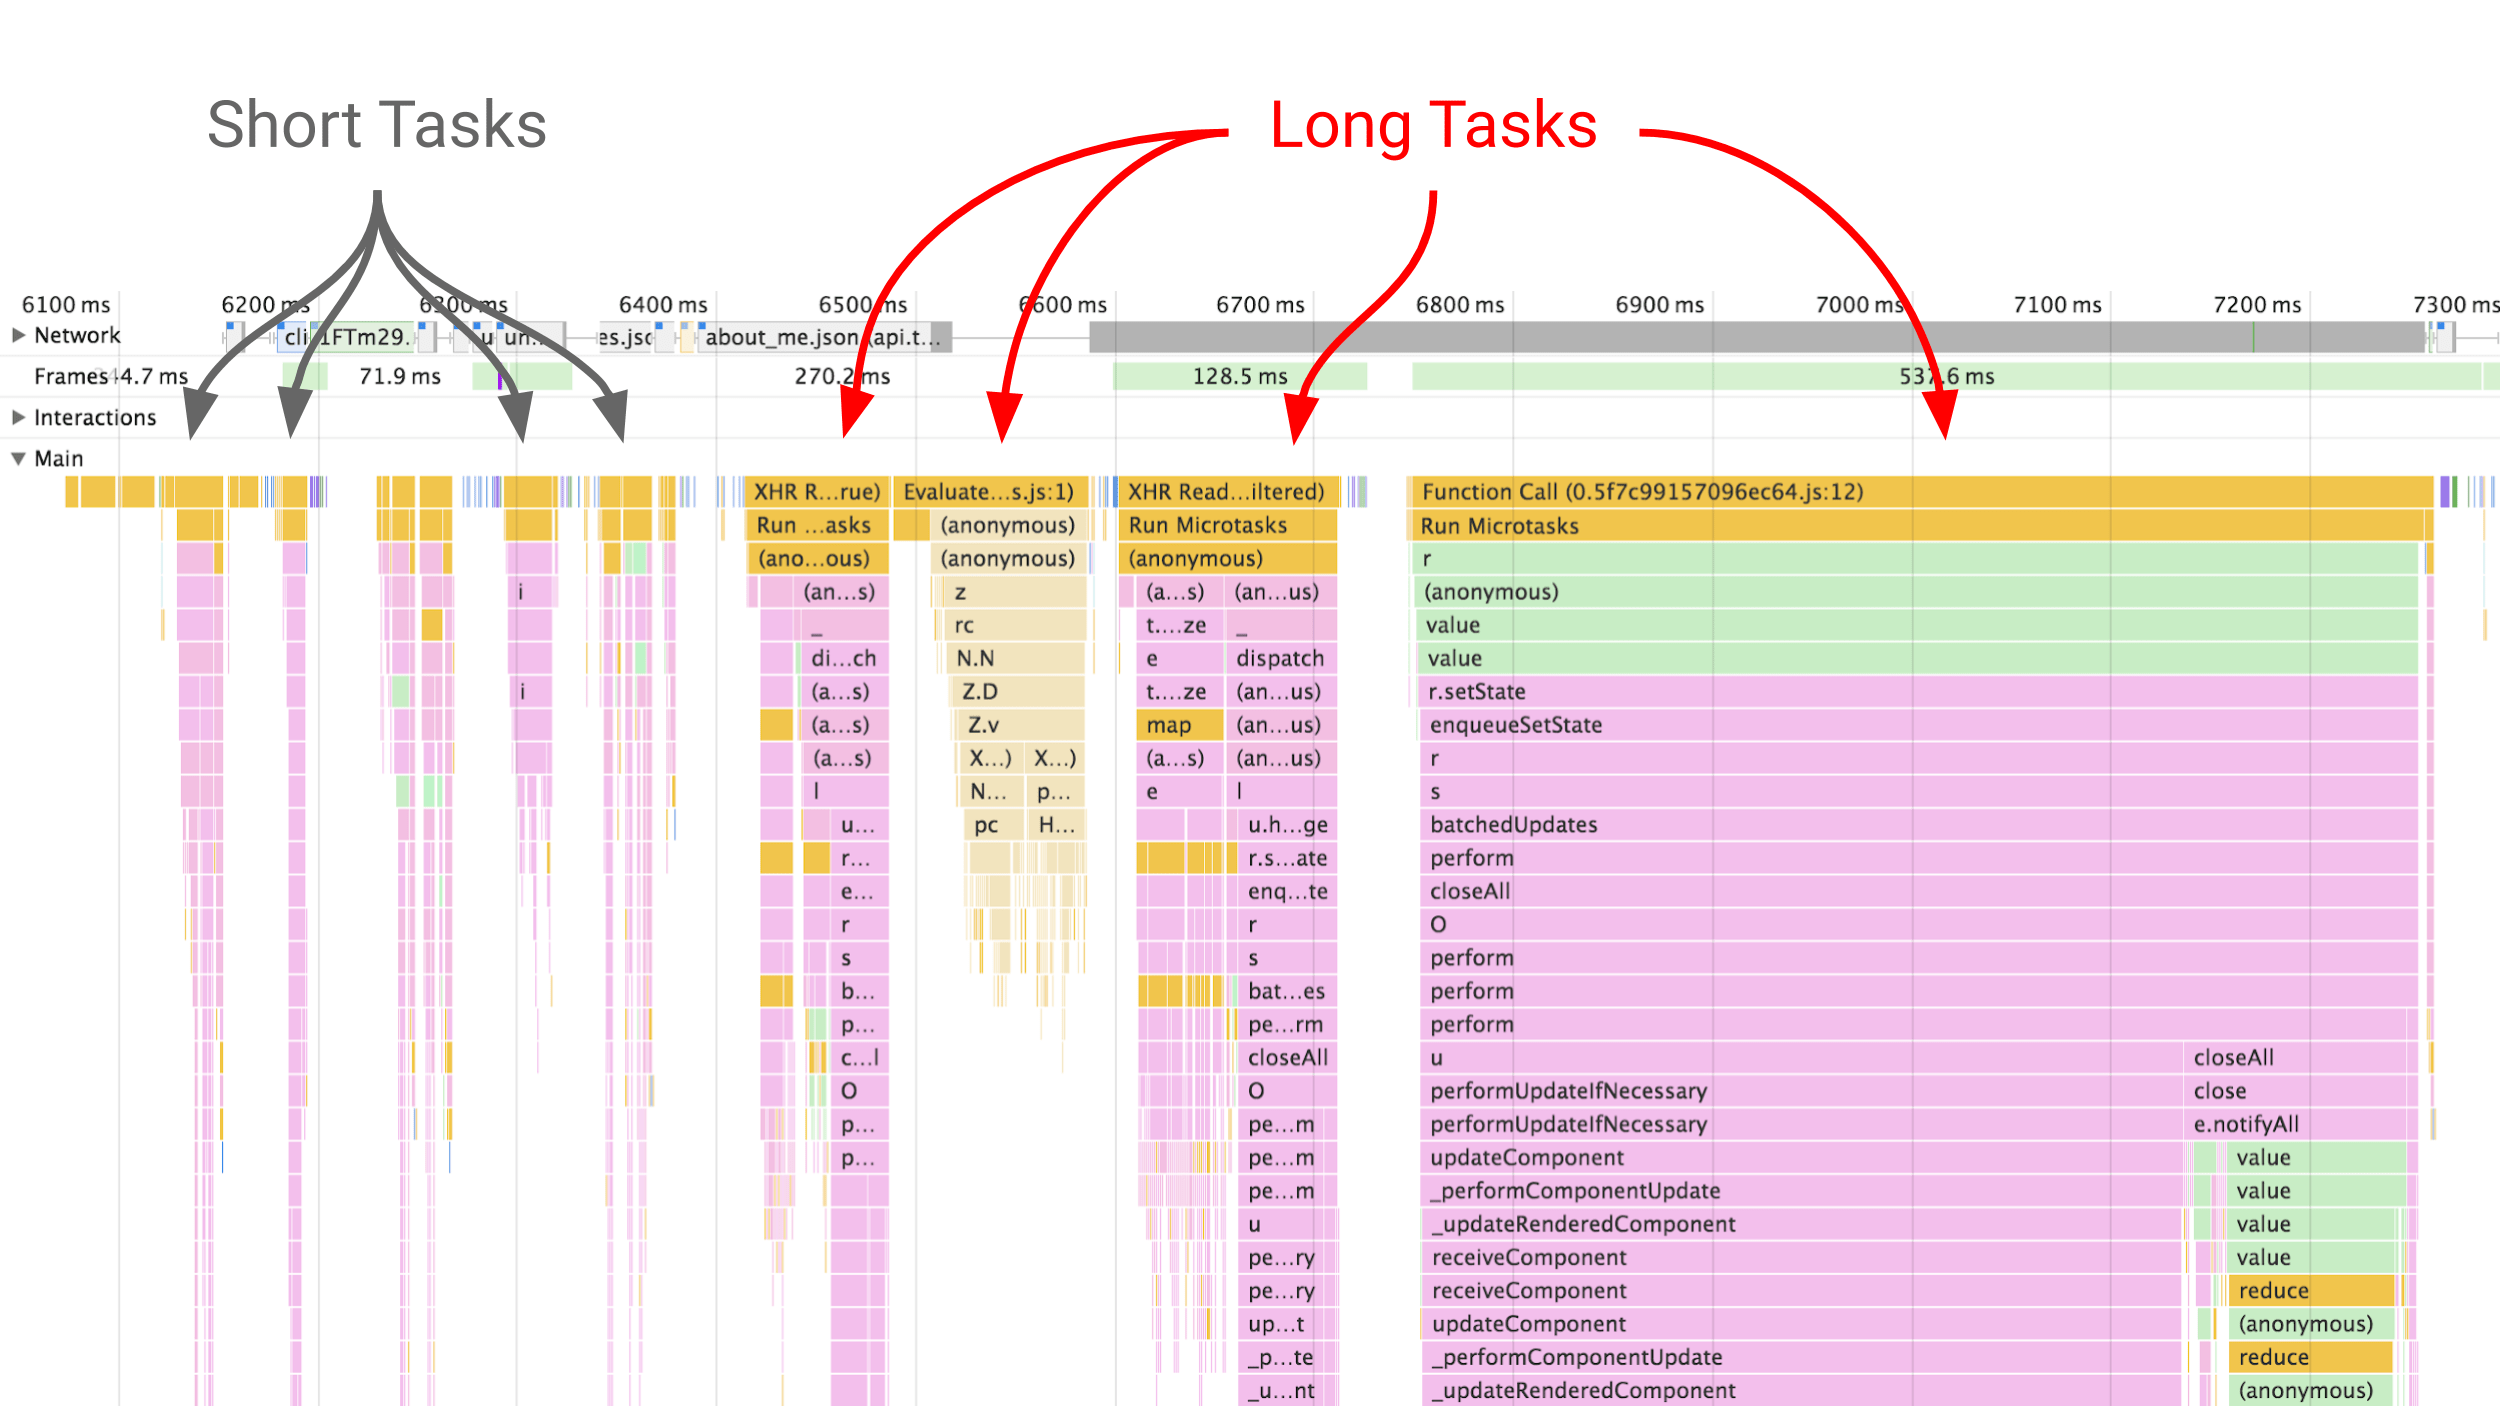 A DevTools Performance panel screenshot showing the differences between short tasks and long tasks